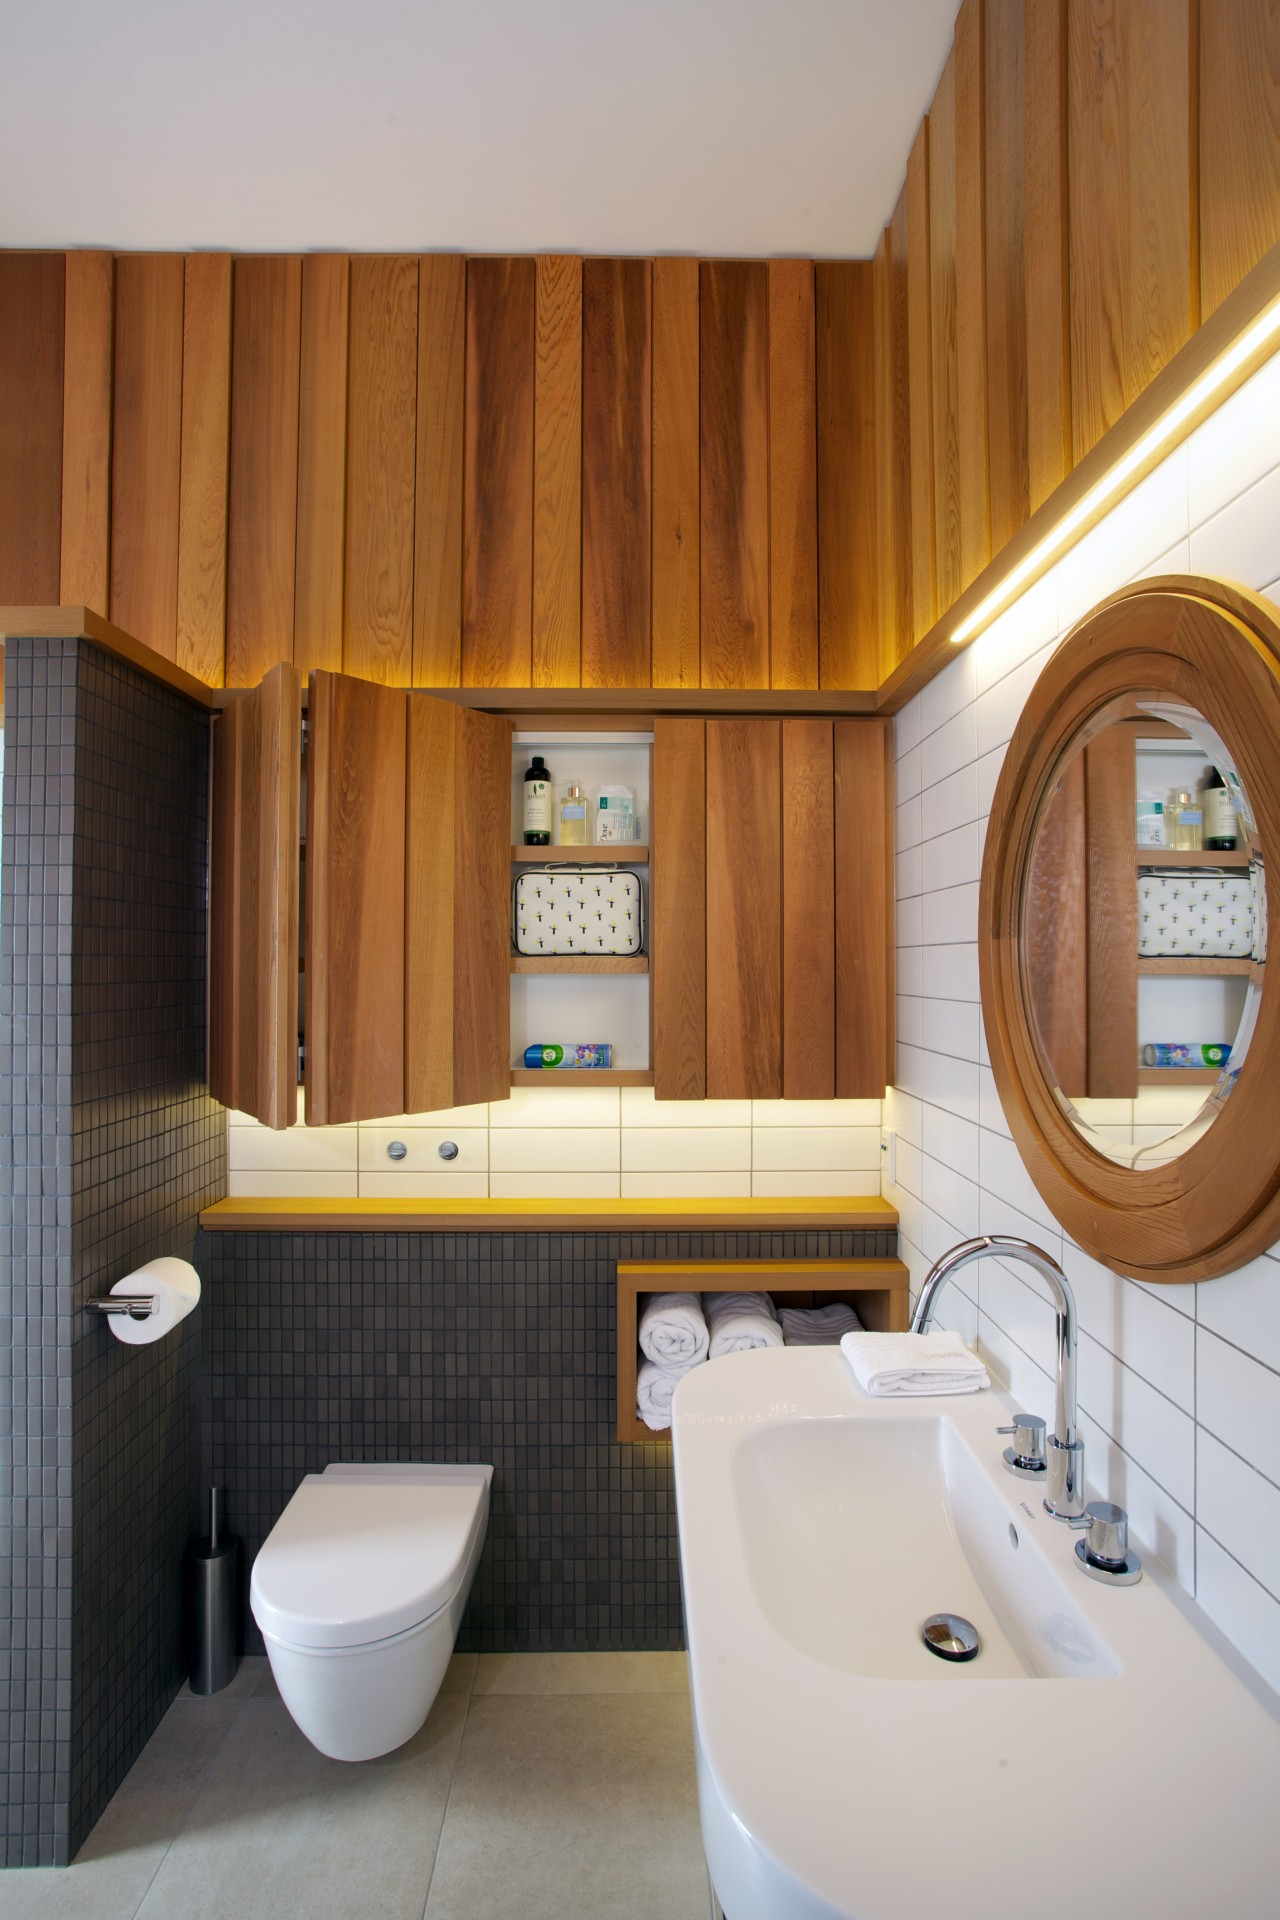 Oiled western red cedar shiplap wraps around the architecture, bathroom, home, interior design, plumbing fixture, room, toilet, gray, brown